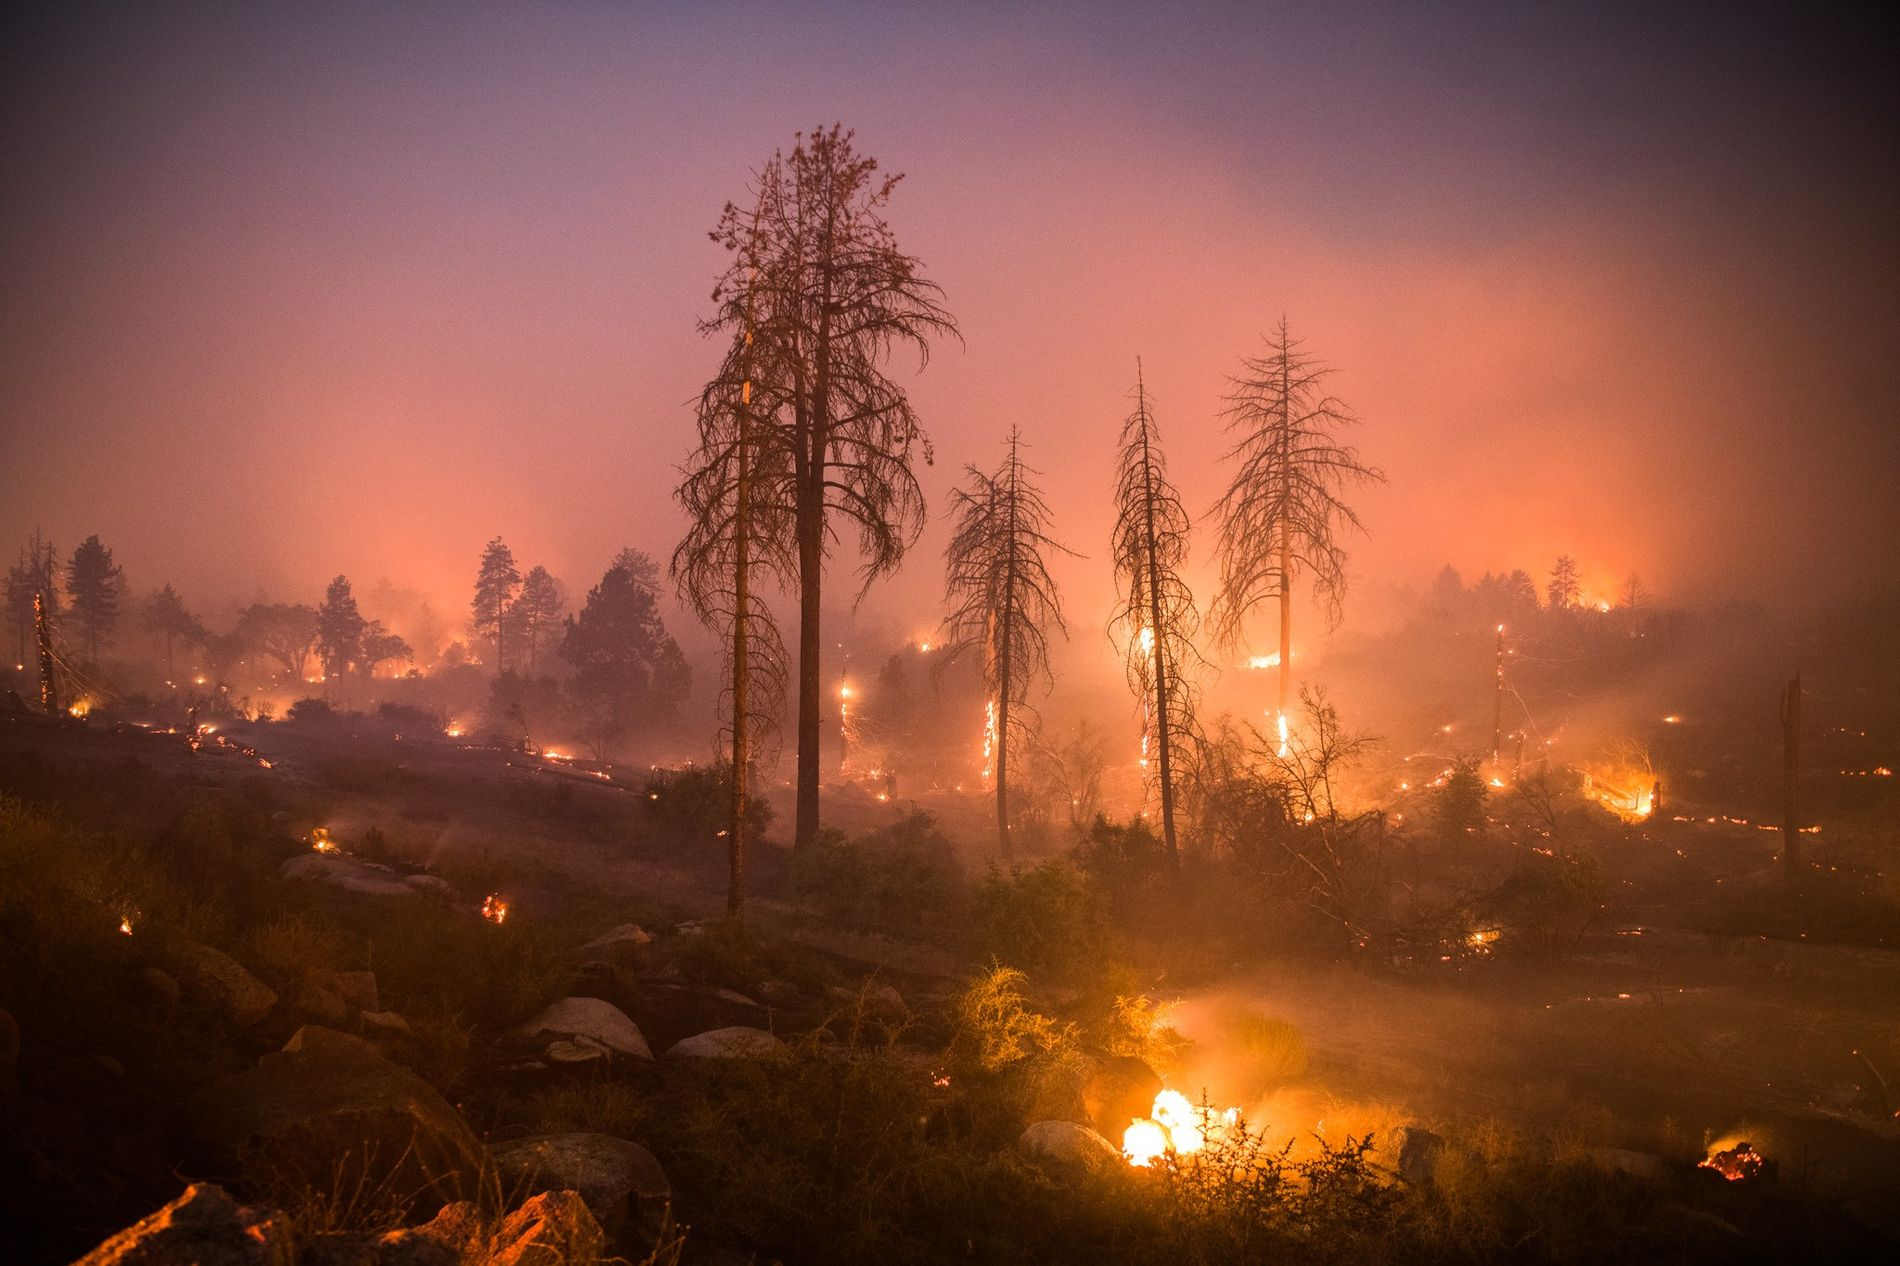 A long exposure shows the Cranston Fire burning on July 25 near Idyllwild, California. The blaze spread quickly, engulfing and destroying houses and buildings before firefighters could contain it.